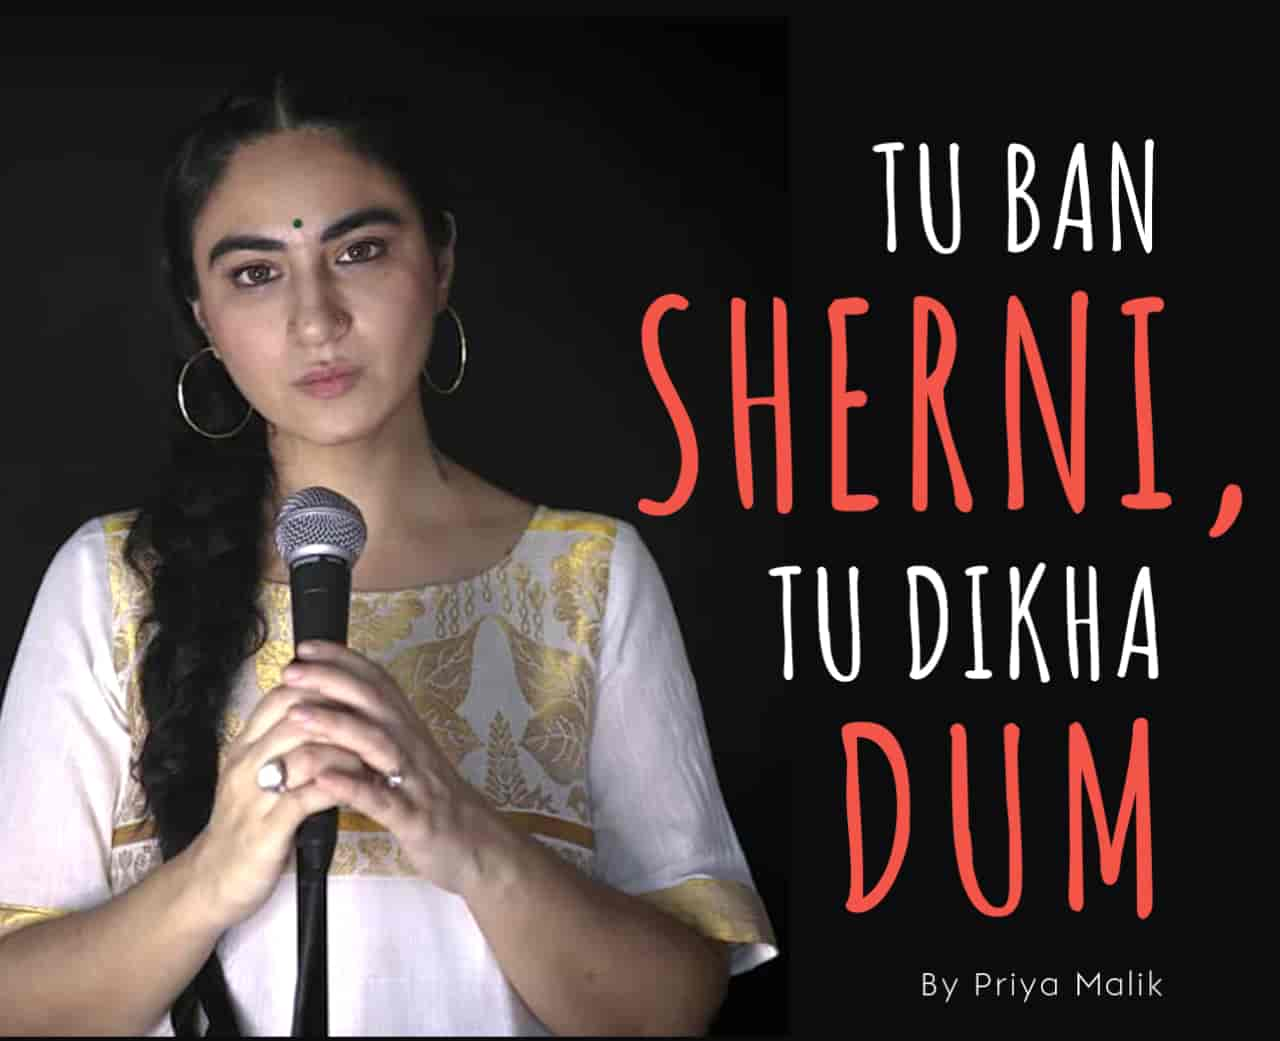 "After a long time Priya Malik back with a Hindi poem named ""Tu Ban Sherni Tu Dikha Dum"". Which is a Hindi poem inspired by a web series show called 'Aarya', written by Priya Malik. Aarya has Susmita Sen in the lead role. In this show she is the mother of three children and the wife of a businessman played by Chandrachur Singh, who is shot dead in broad daylight. She does everything to protect her three children while fighting tough situations.  This poem by Priya Malik inspires women to become frank and strong."